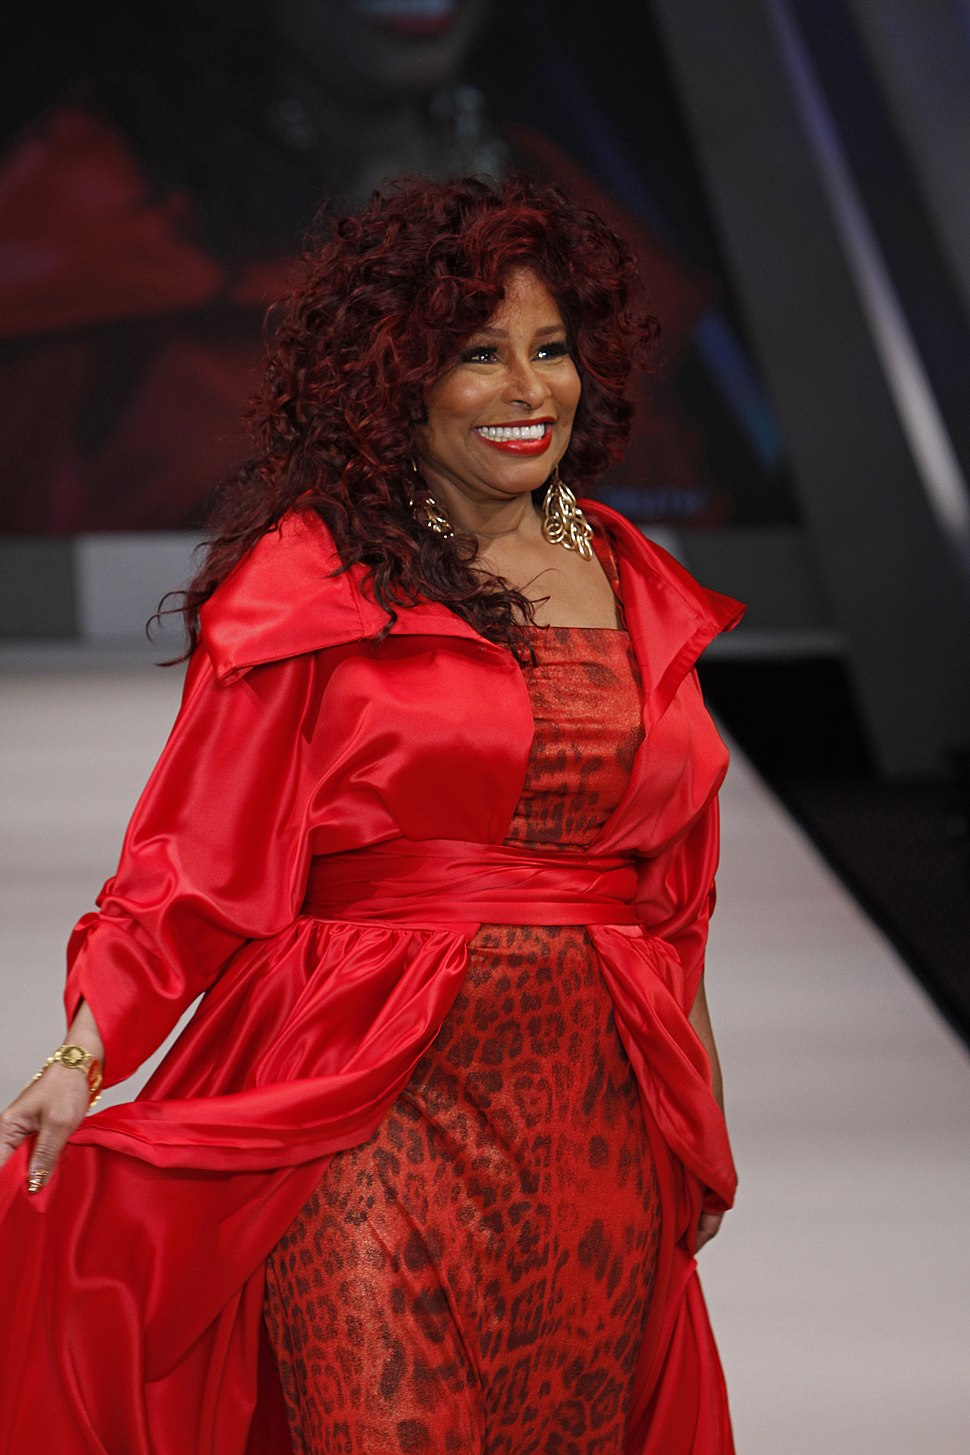 Chaka Khan in Chris March 01.jpg